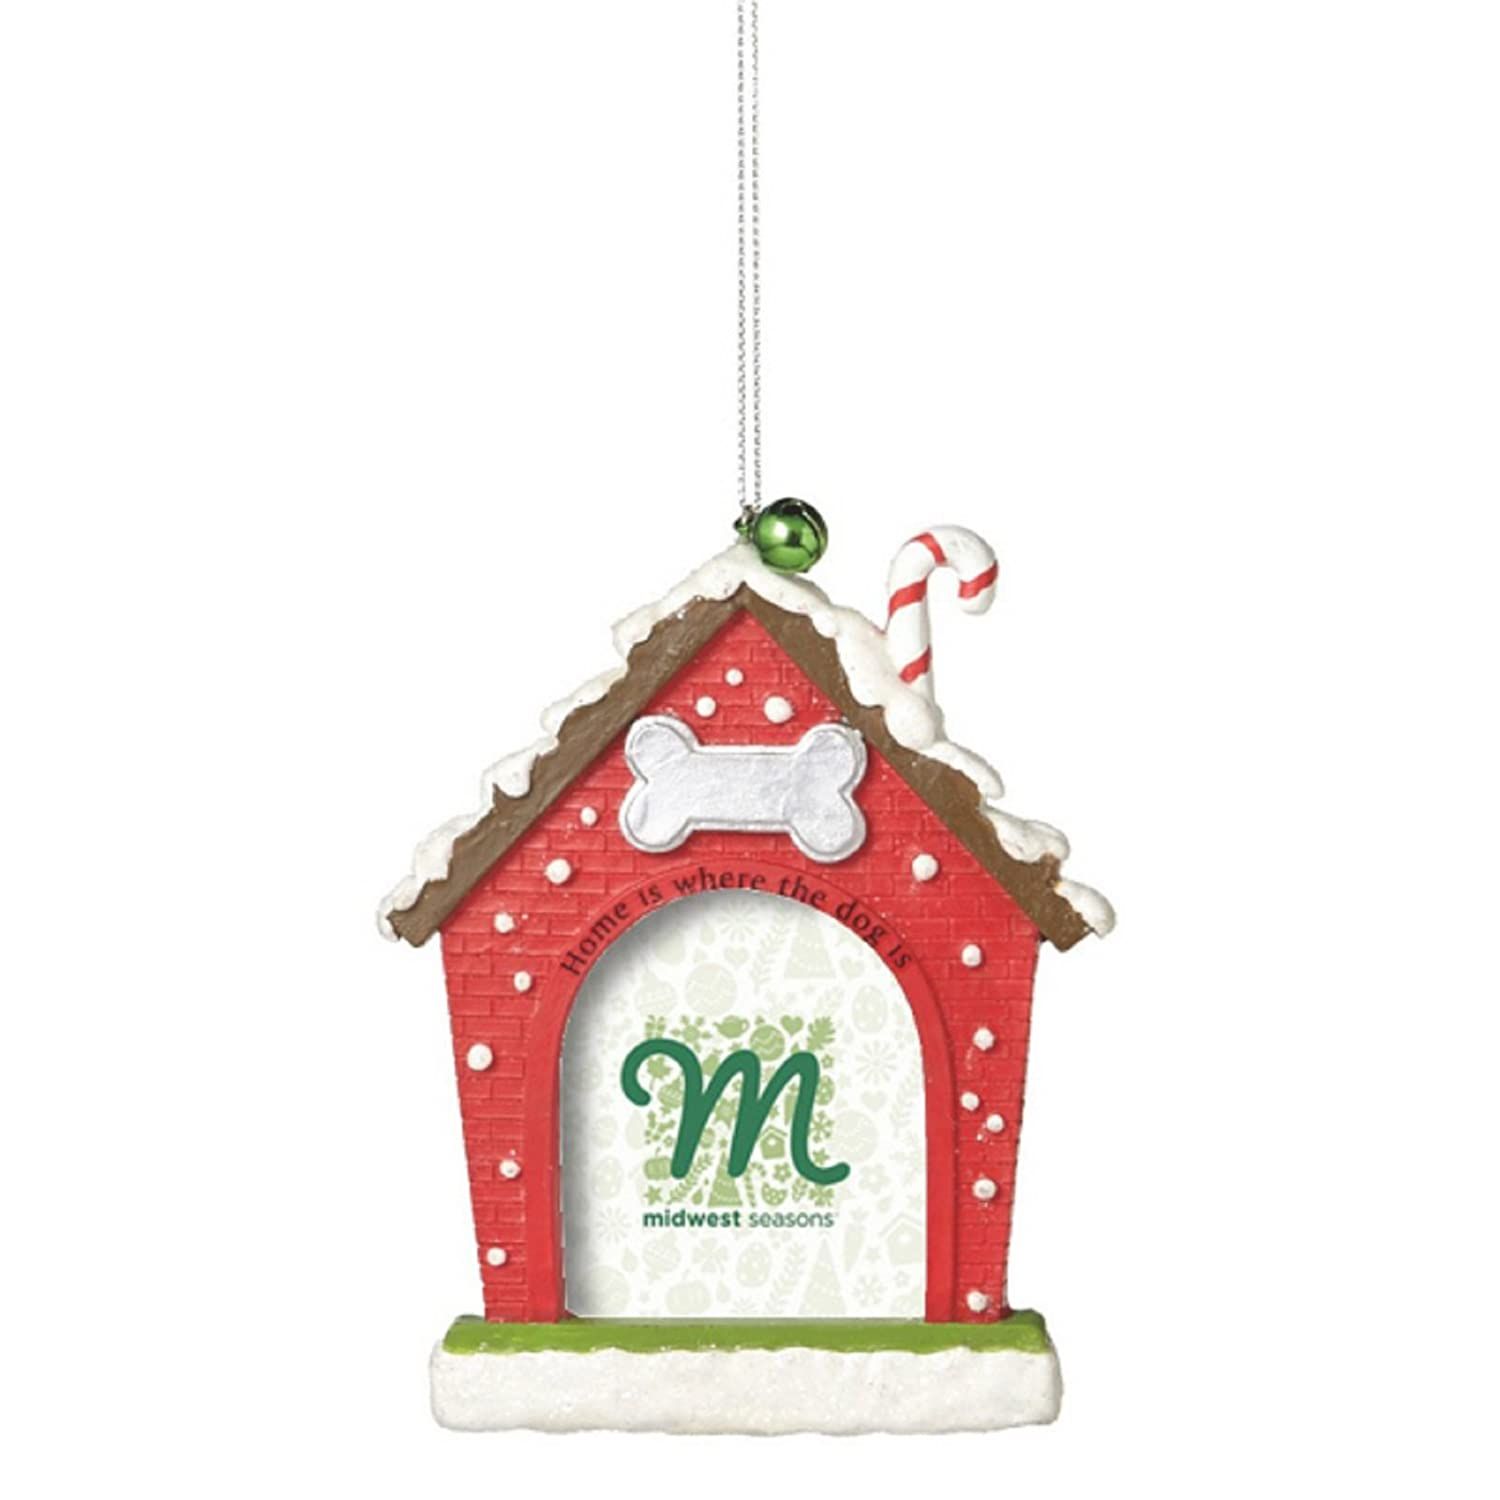 Amazon.com: Christmas Dog House Frame Ornament by Midwest-CBK: Home ...